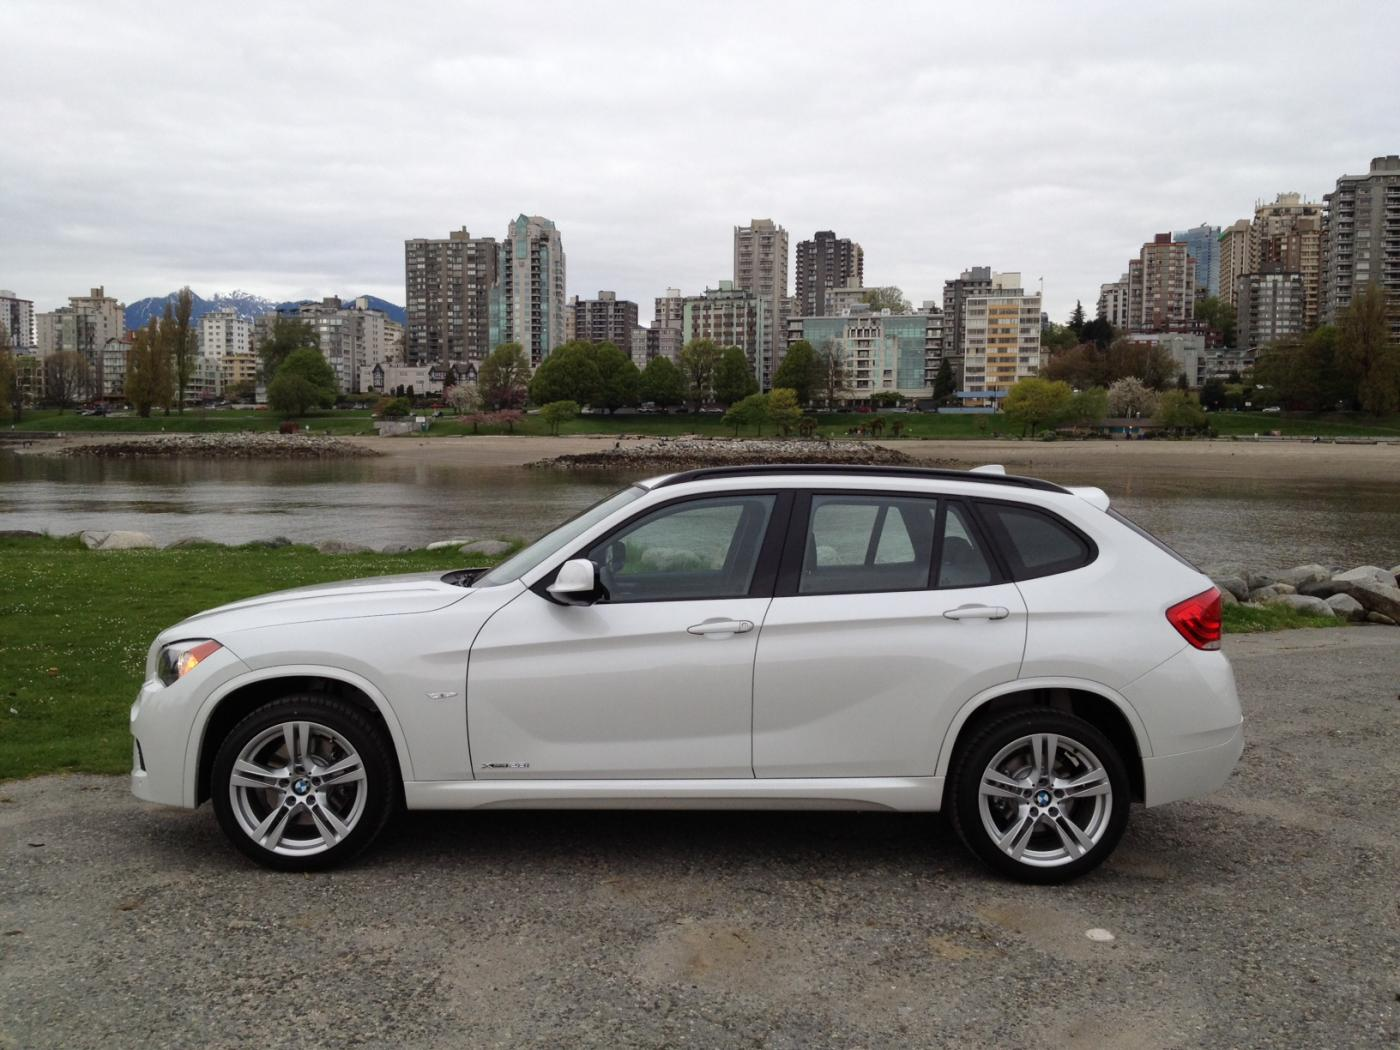 xbimmers bmw x1 forum view single post official alpine white mineral white x1 photos thread. Black Bedroom Furniture Sets. Home Design Ideas